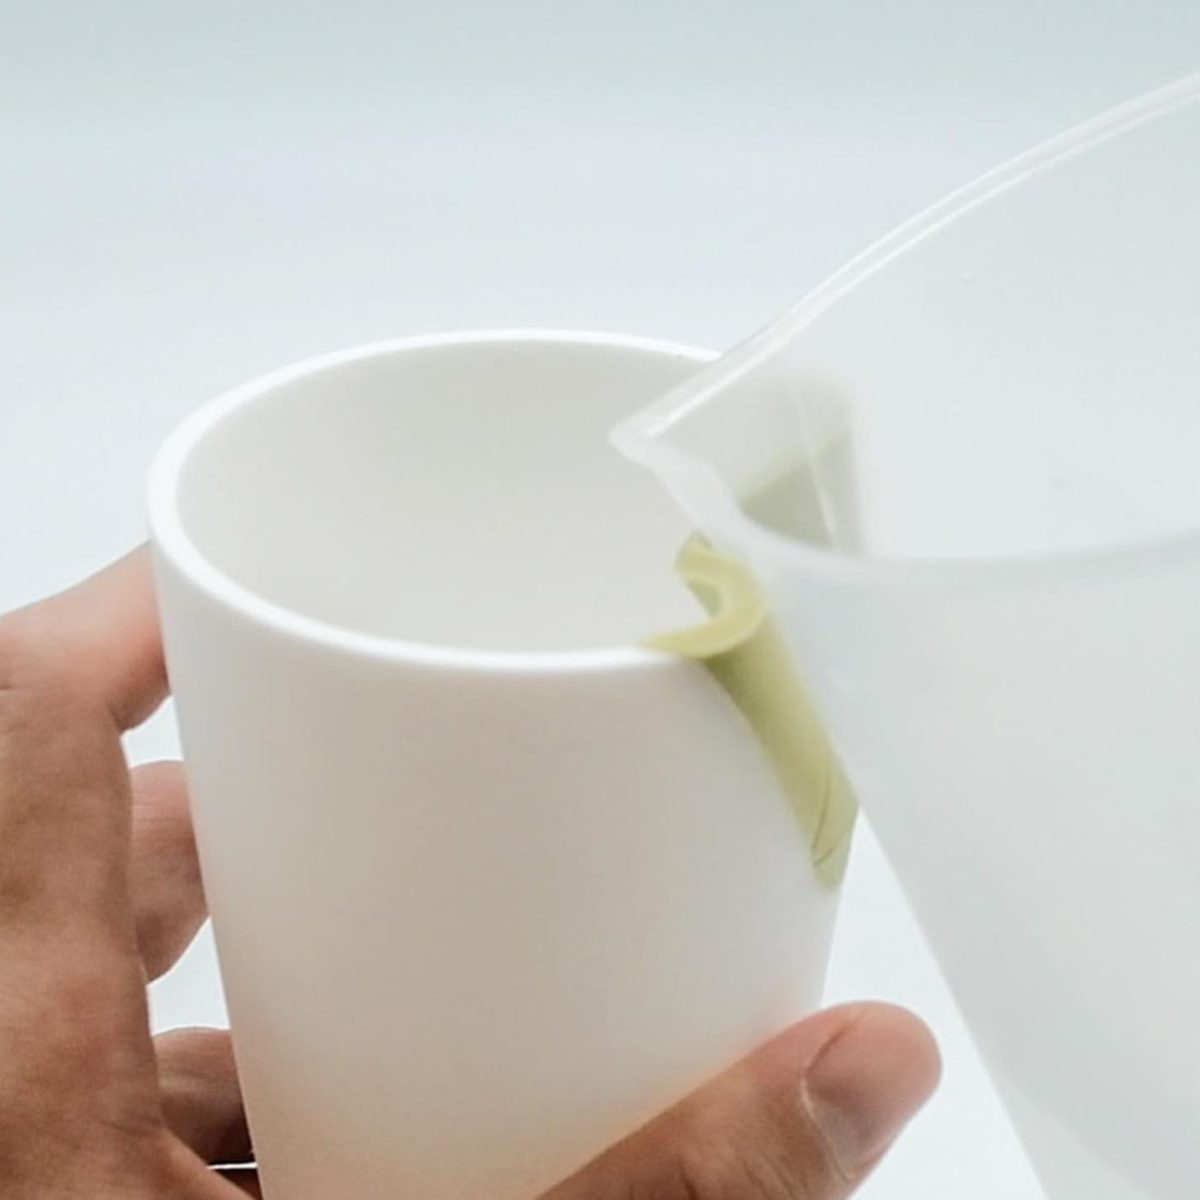 Industrial Designer Jexter Lim's Adaptive Tableware for Visually Impaired People